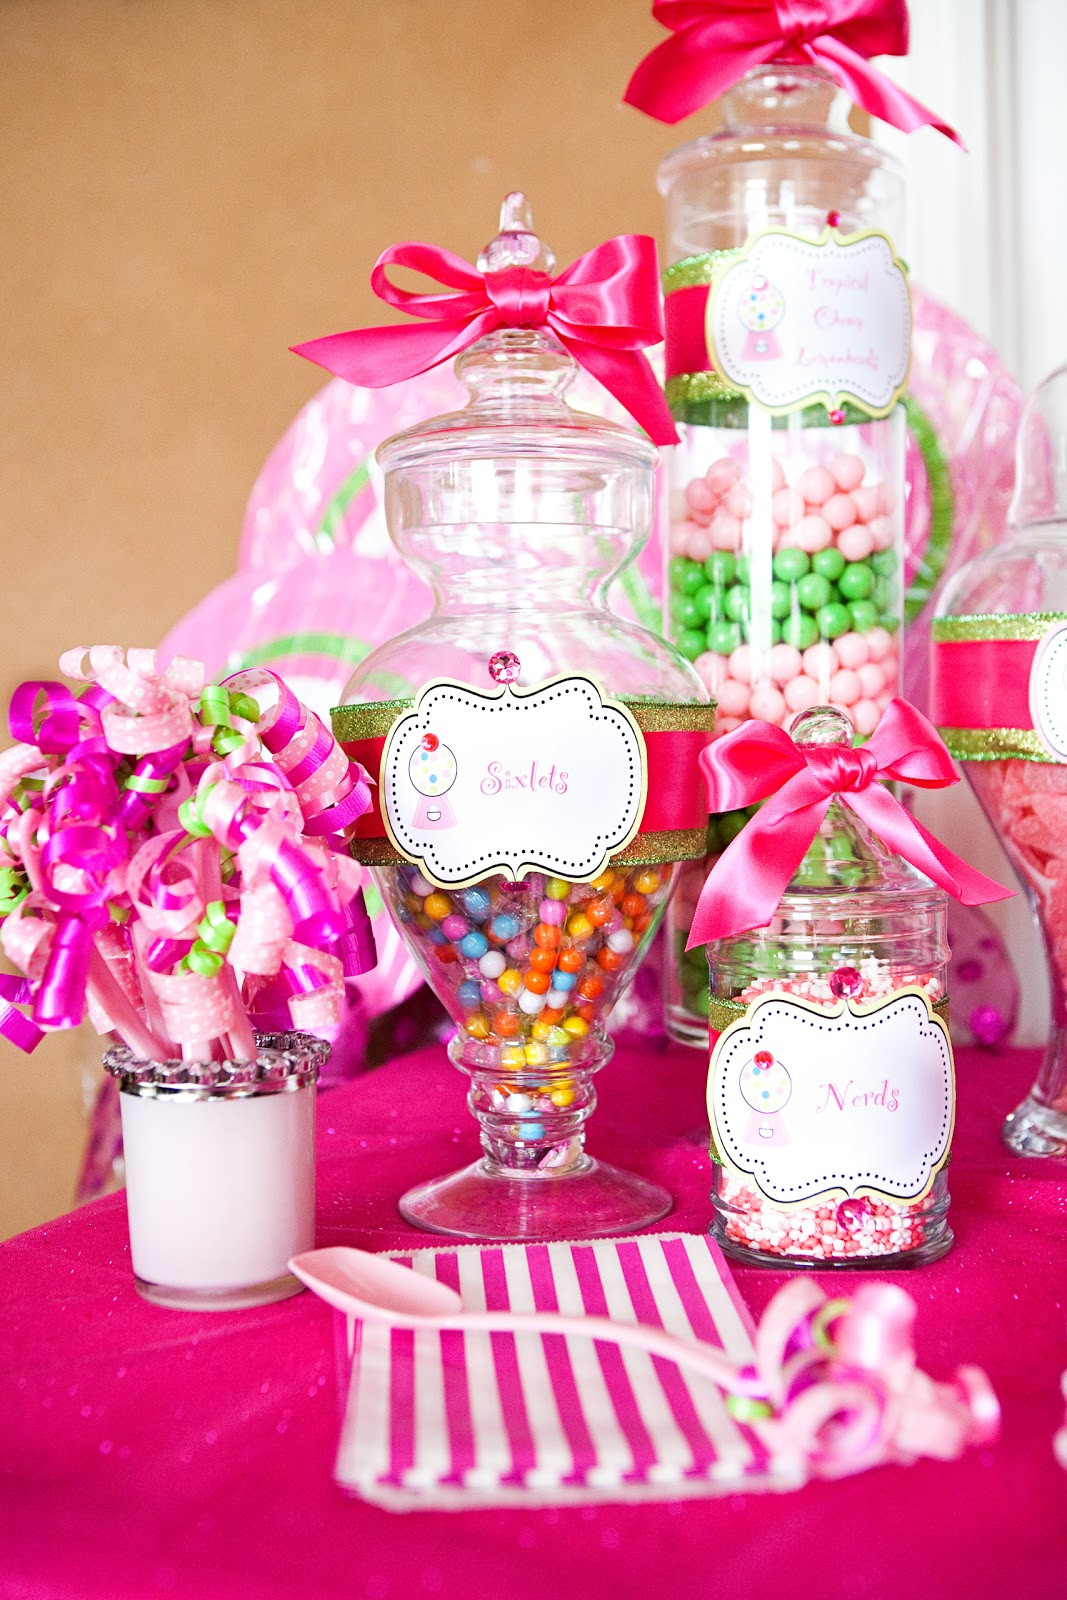 Best ideas about Birthday Party Ideas For Girls . Save or Pin The TomKat Studio Sweet Customers Pink Sweet Shoppe Now.